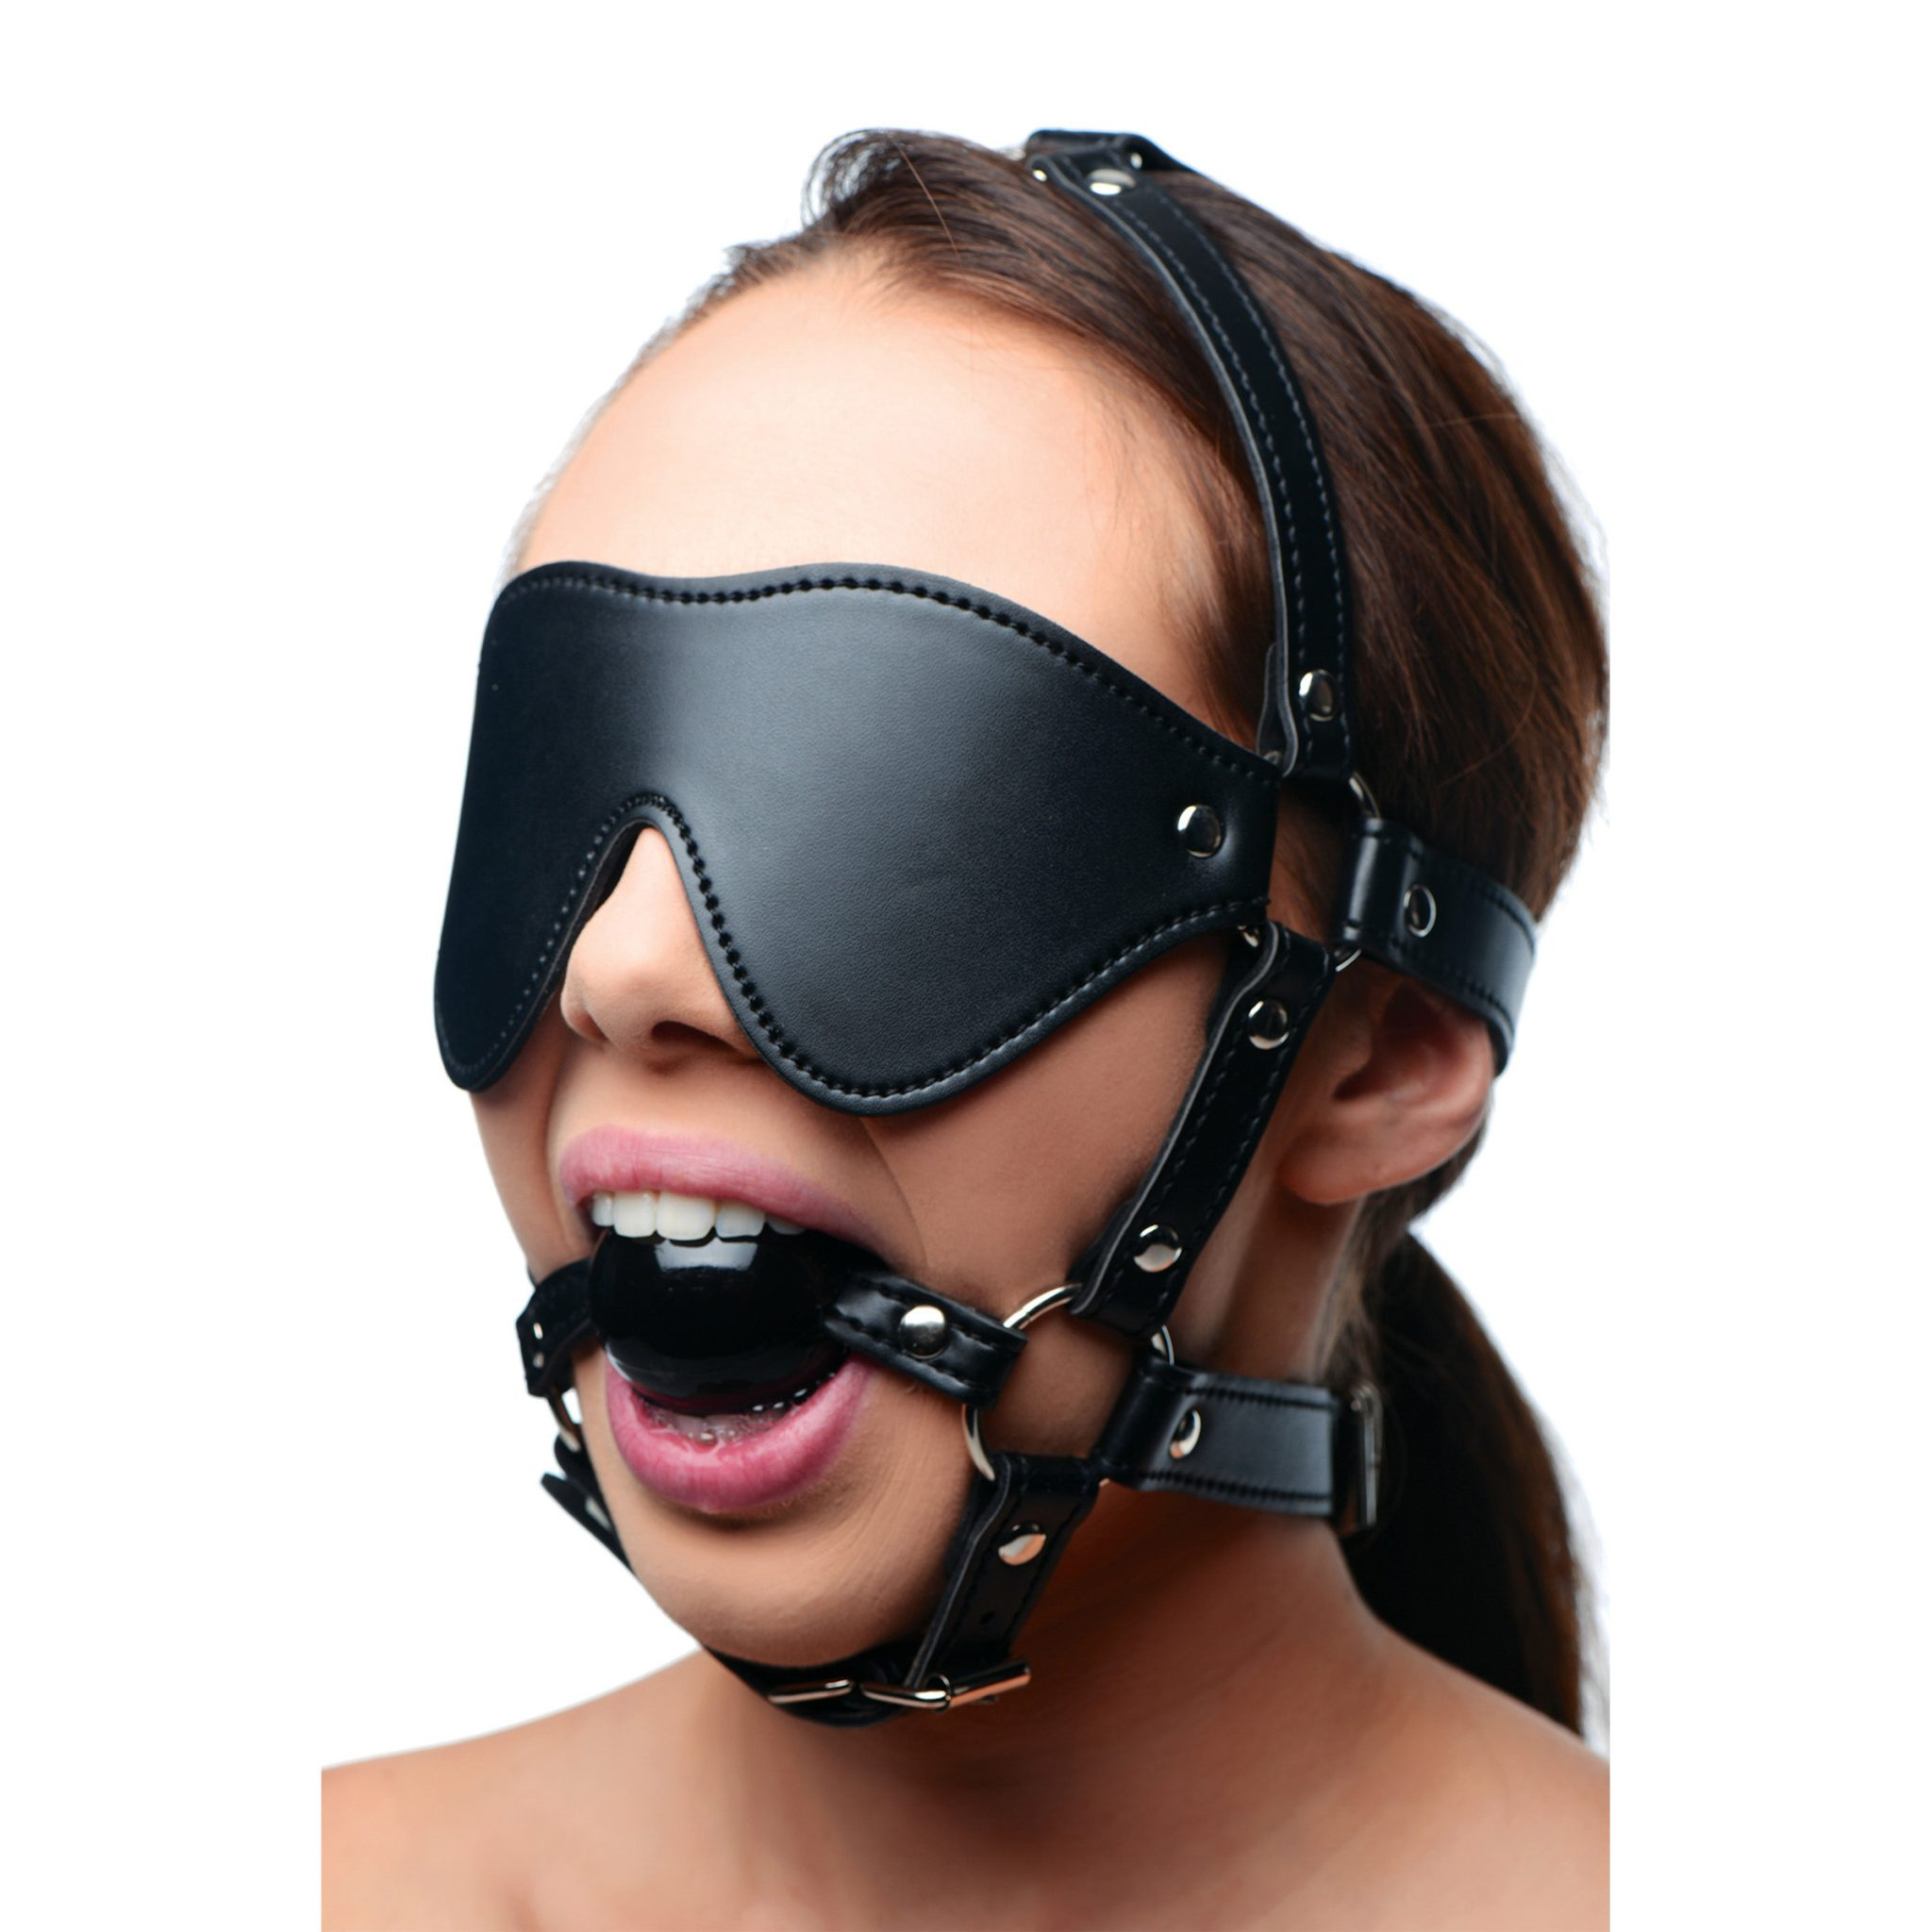 Blindfold Harness and Ball Gag